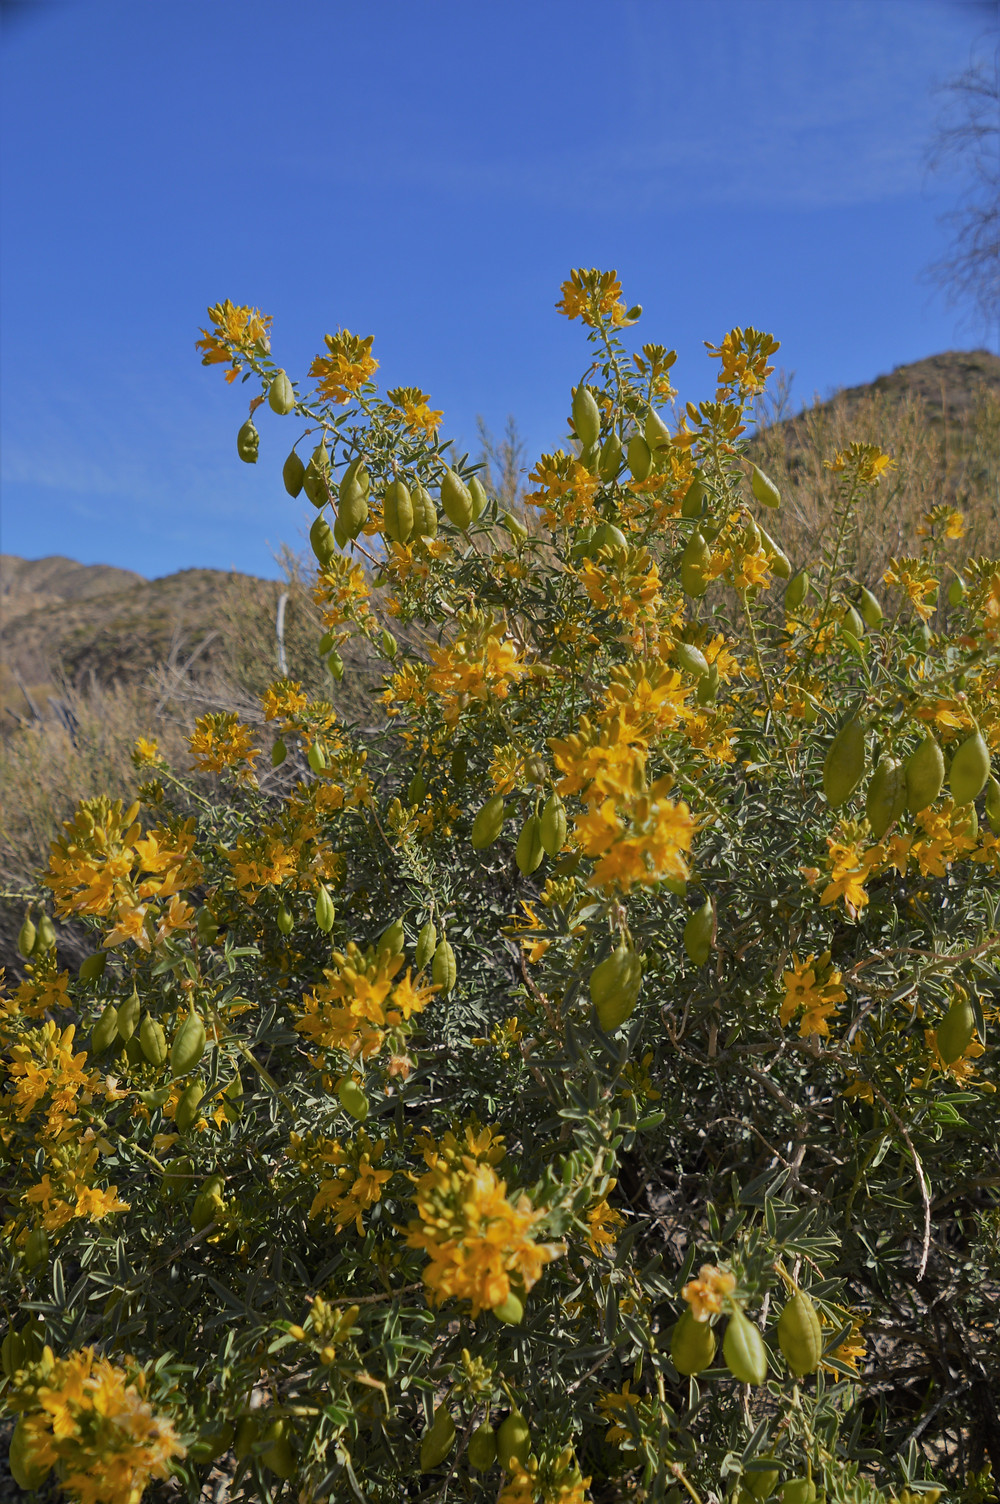 Bladder pods and their bright yellow flowers along the Big Morongo Canyon Trail in the Little San Bernardino Mountains in Morongo Valley